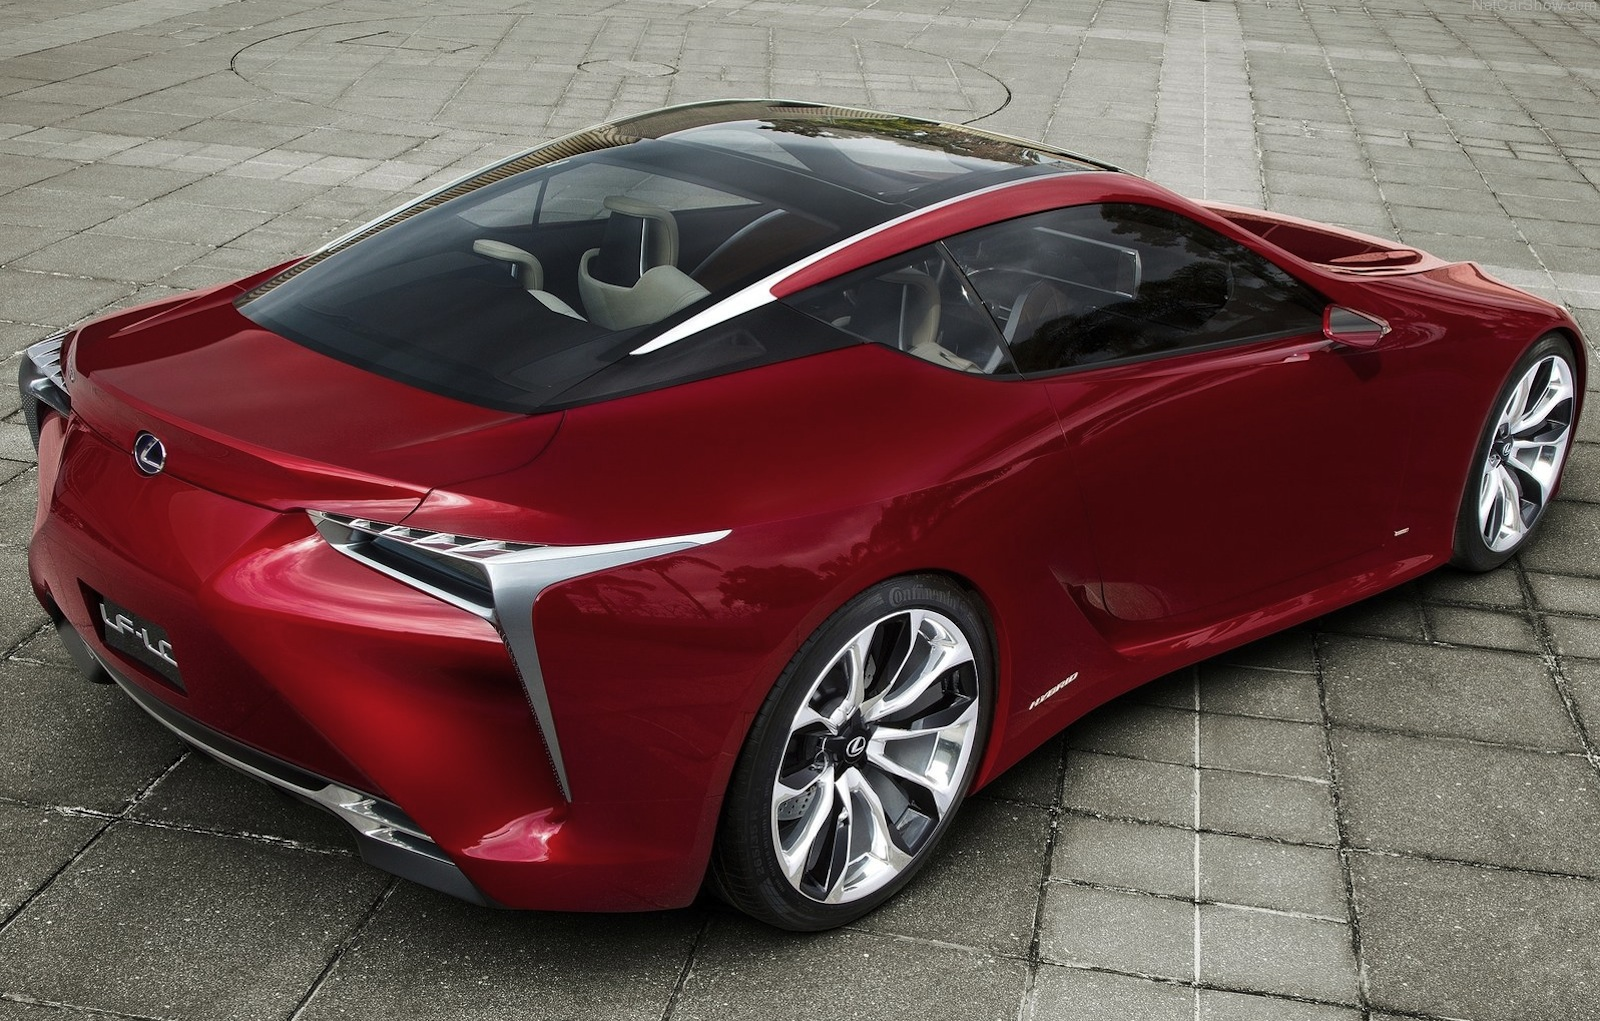 Lexus Lf Lc Price >> Lexus Lf Lc Price Upcoming New Car Release 2020